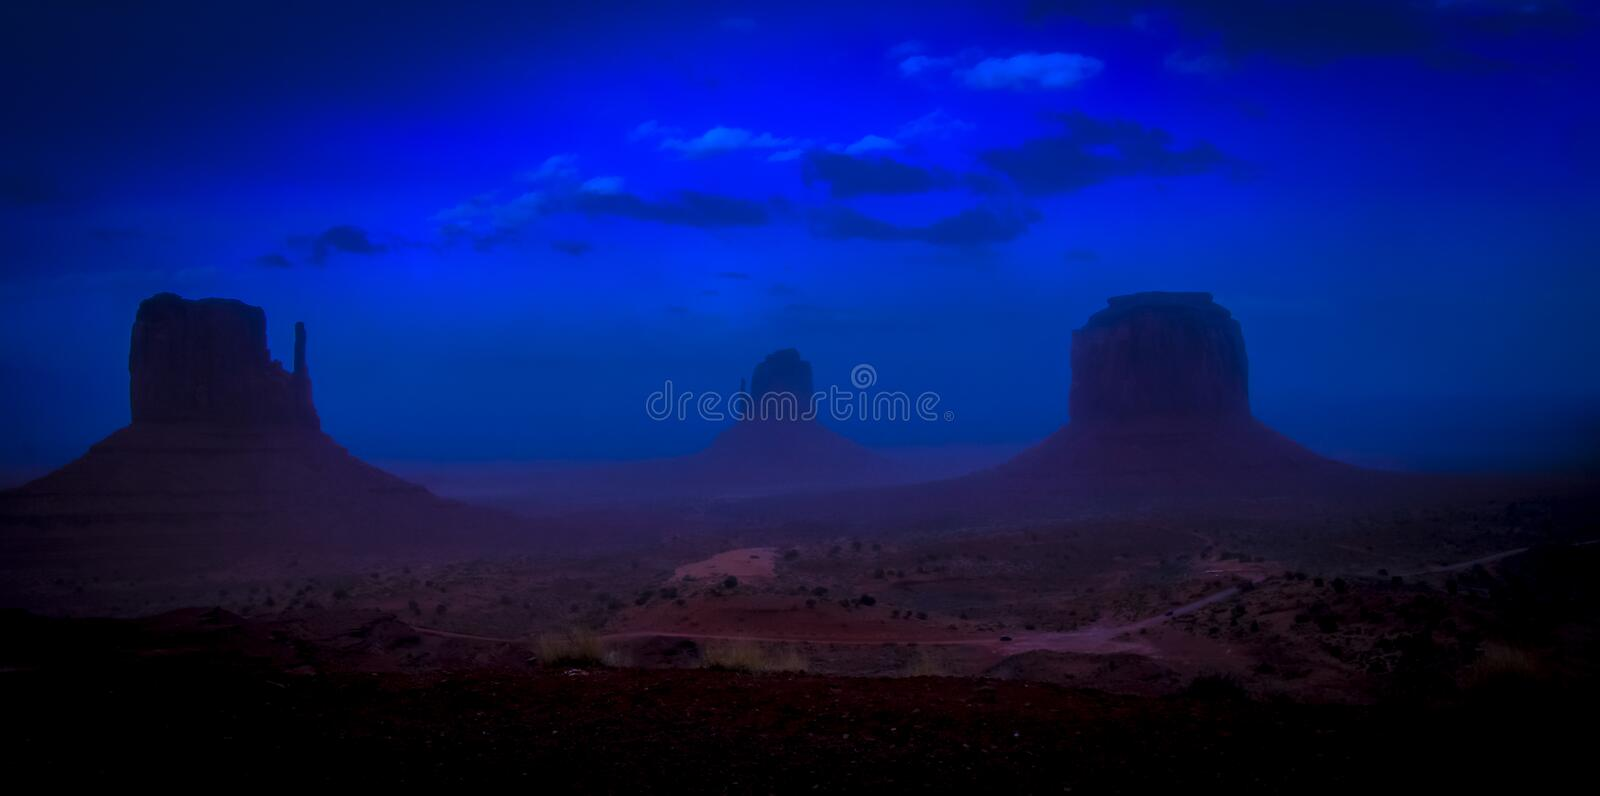 Monument Valley at dusk with iconic West and East Mitten Buttes, Arizona USA. At dusk, the red mesas and buttes of Monument Valley Navajo Tribal Park and the royalty free stock image